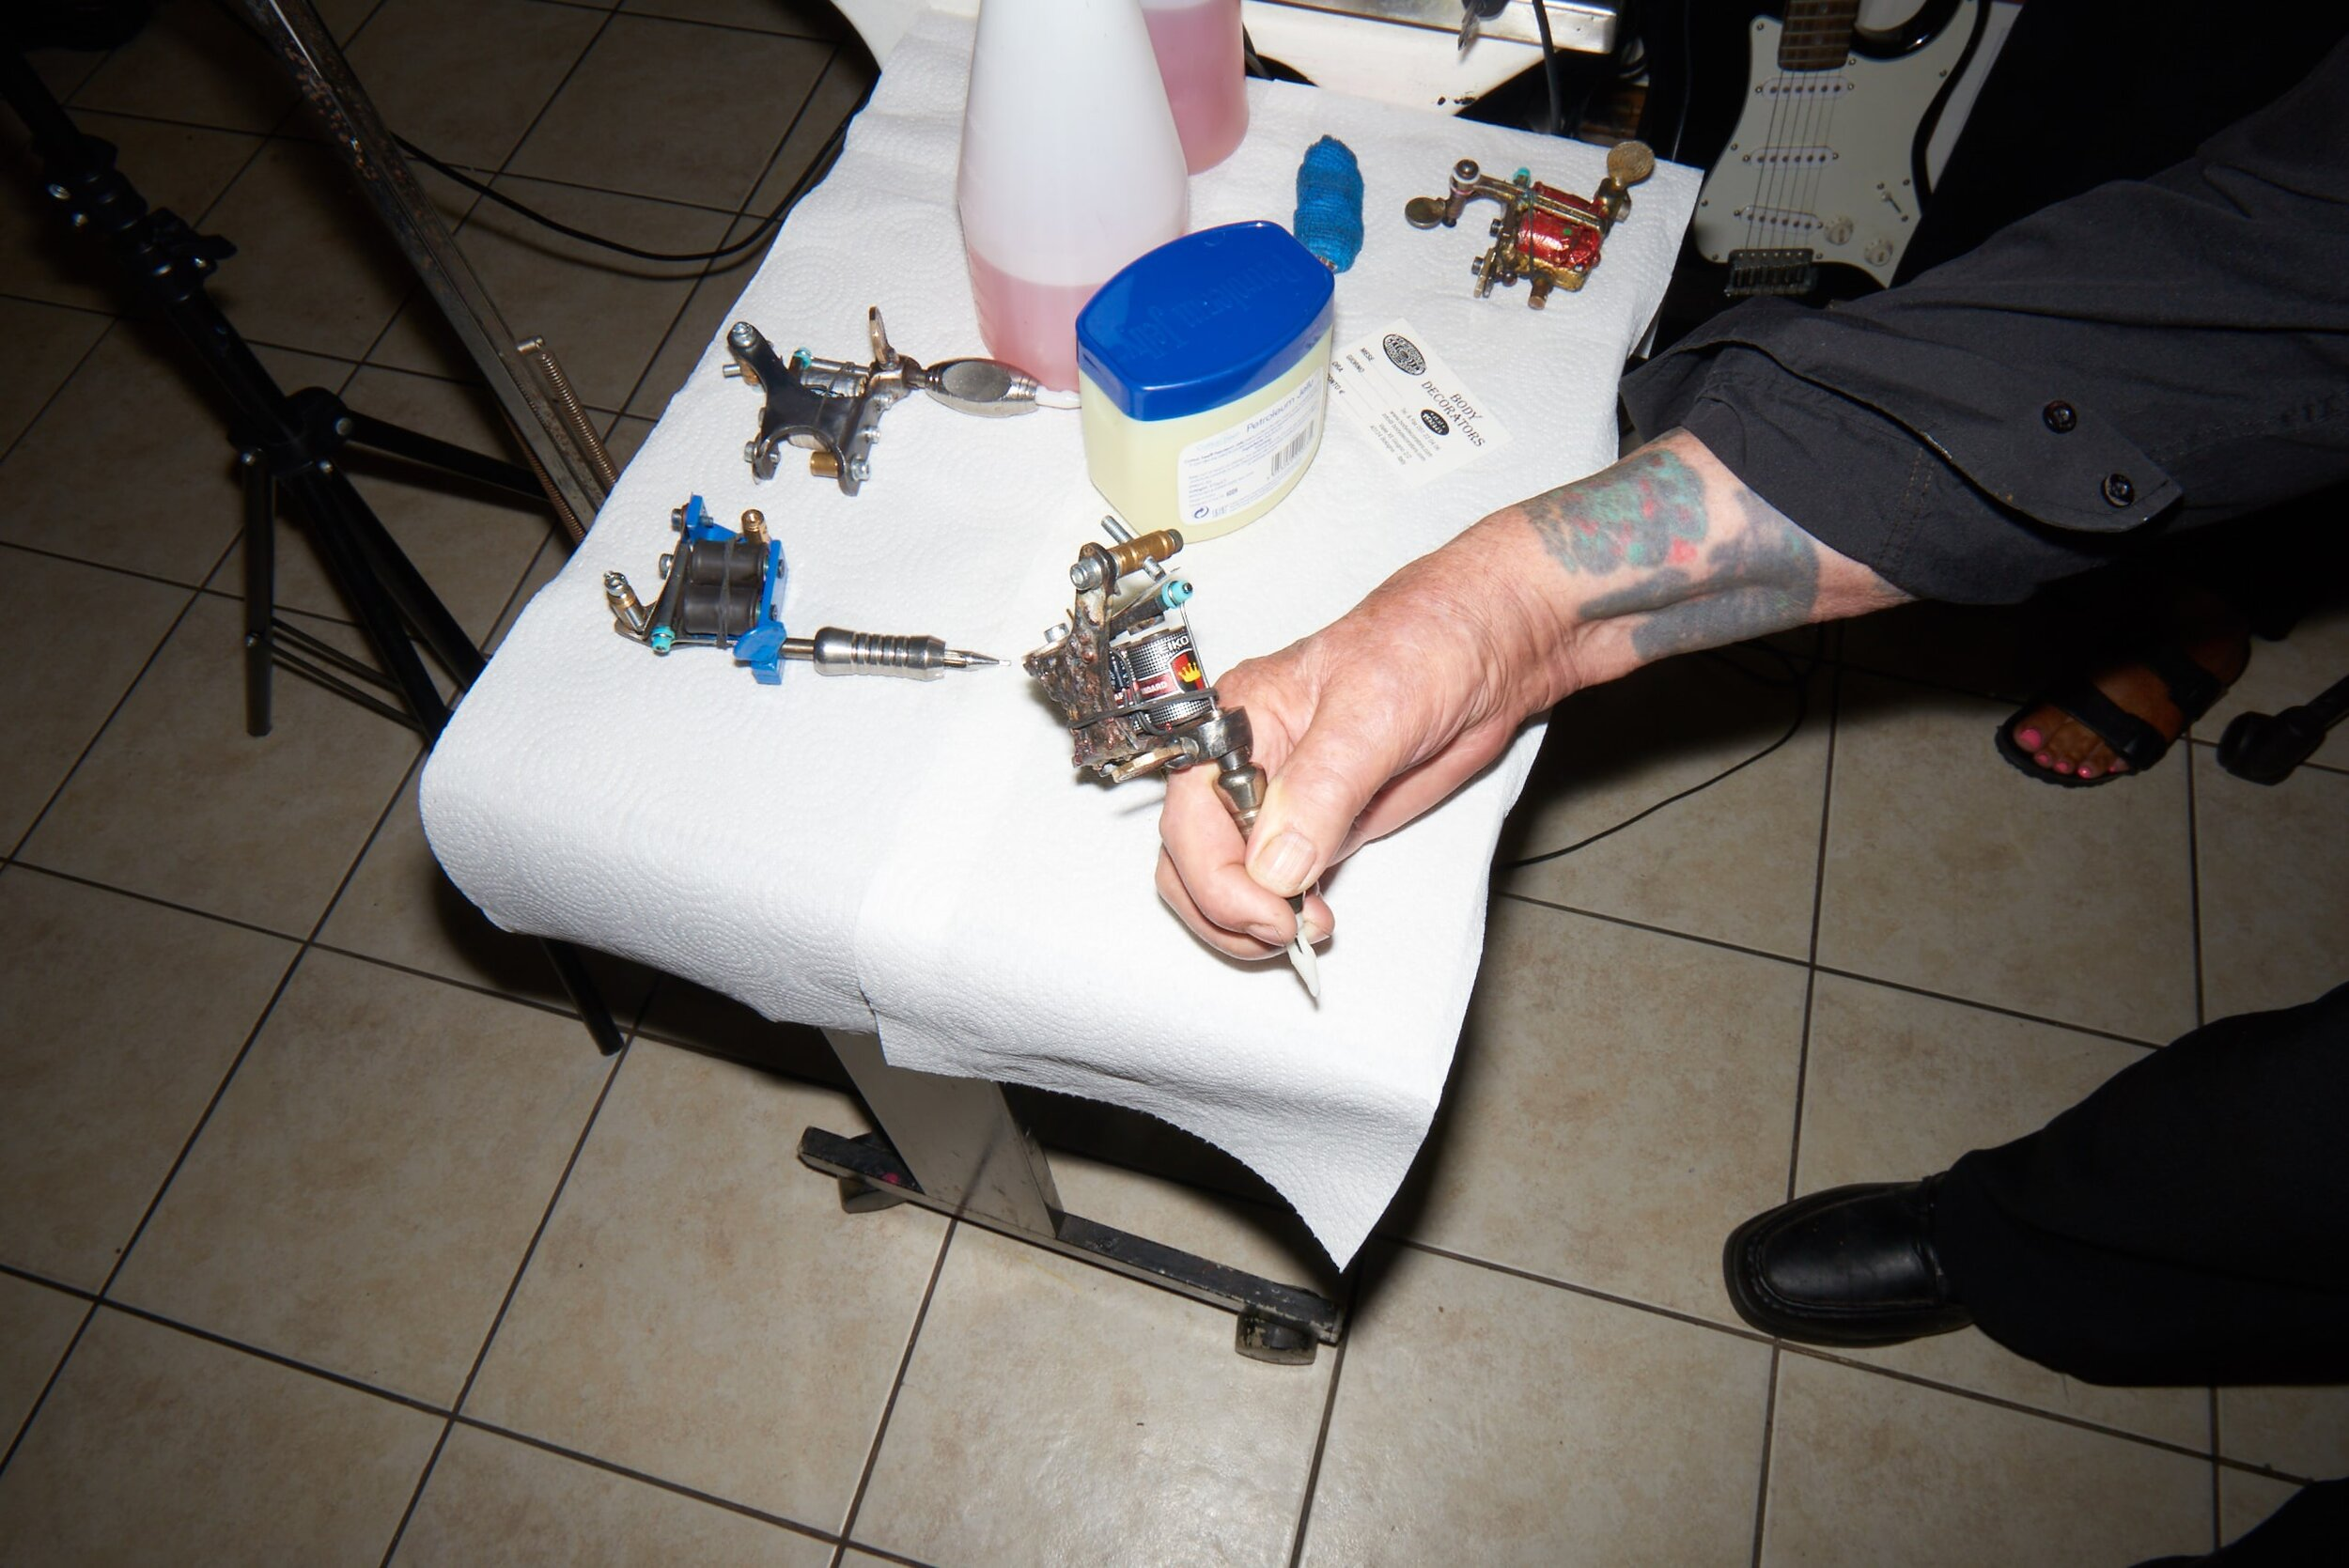 Doc Price's arm holding a tattoo needle resting on a table